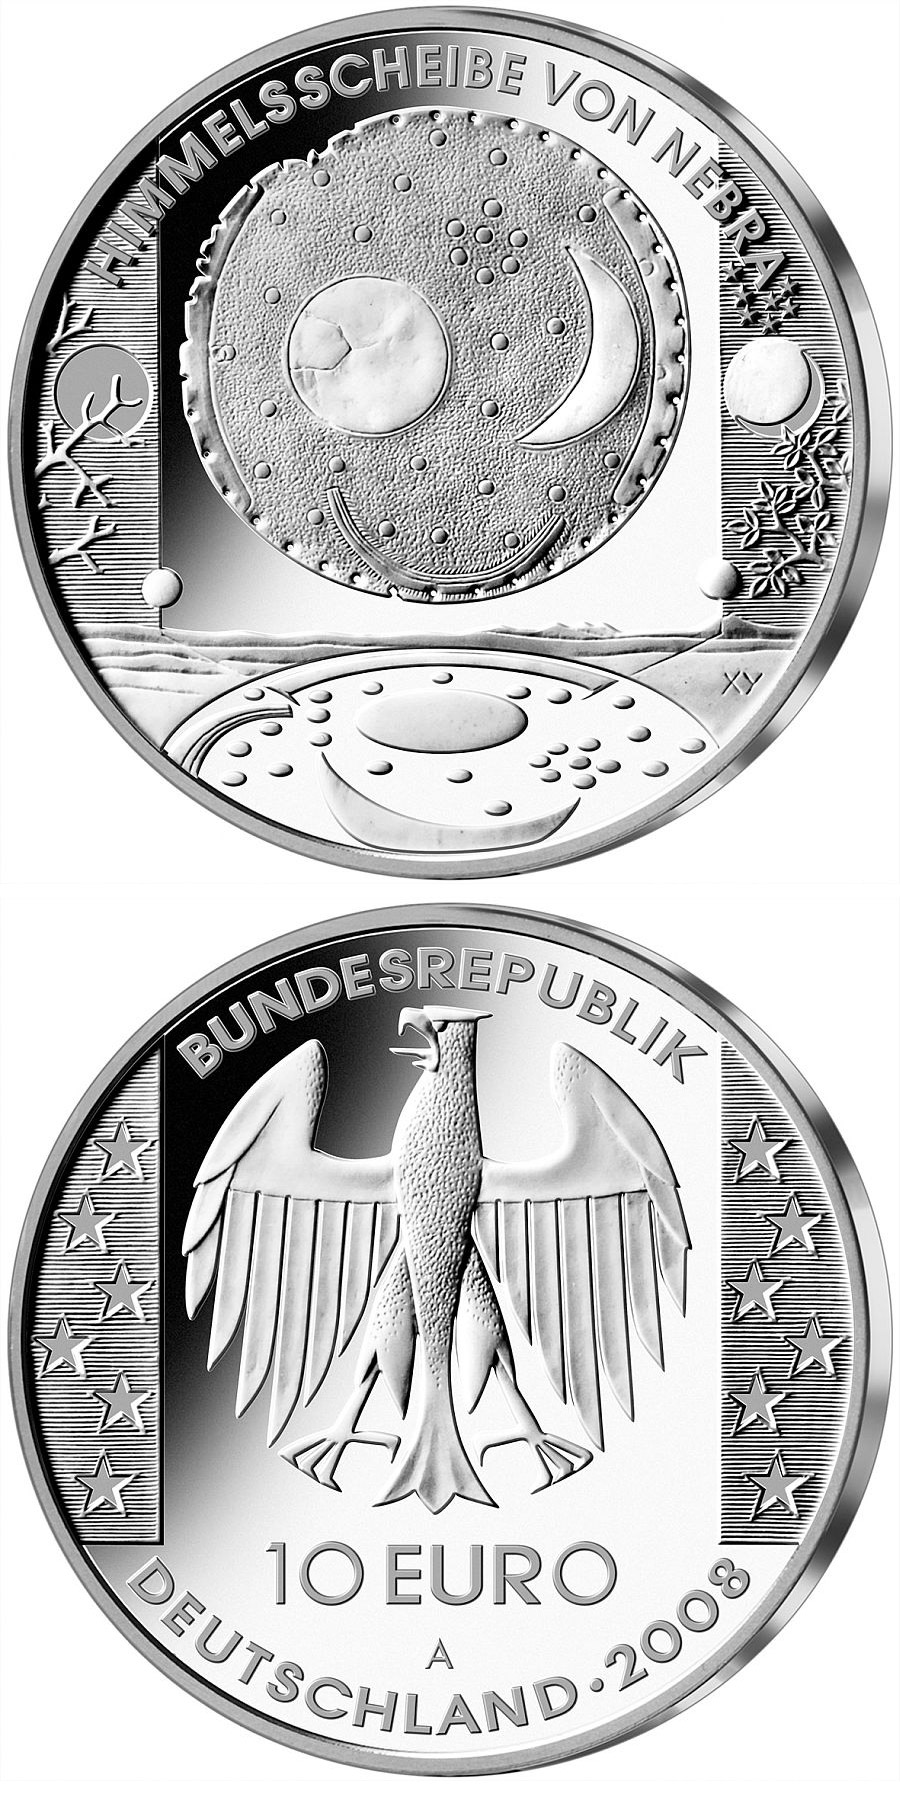 Image of 10 euro coin Himmelsscheibe von Nebra | Germany 2008.  The Silver coin is of Proof, BU quality.